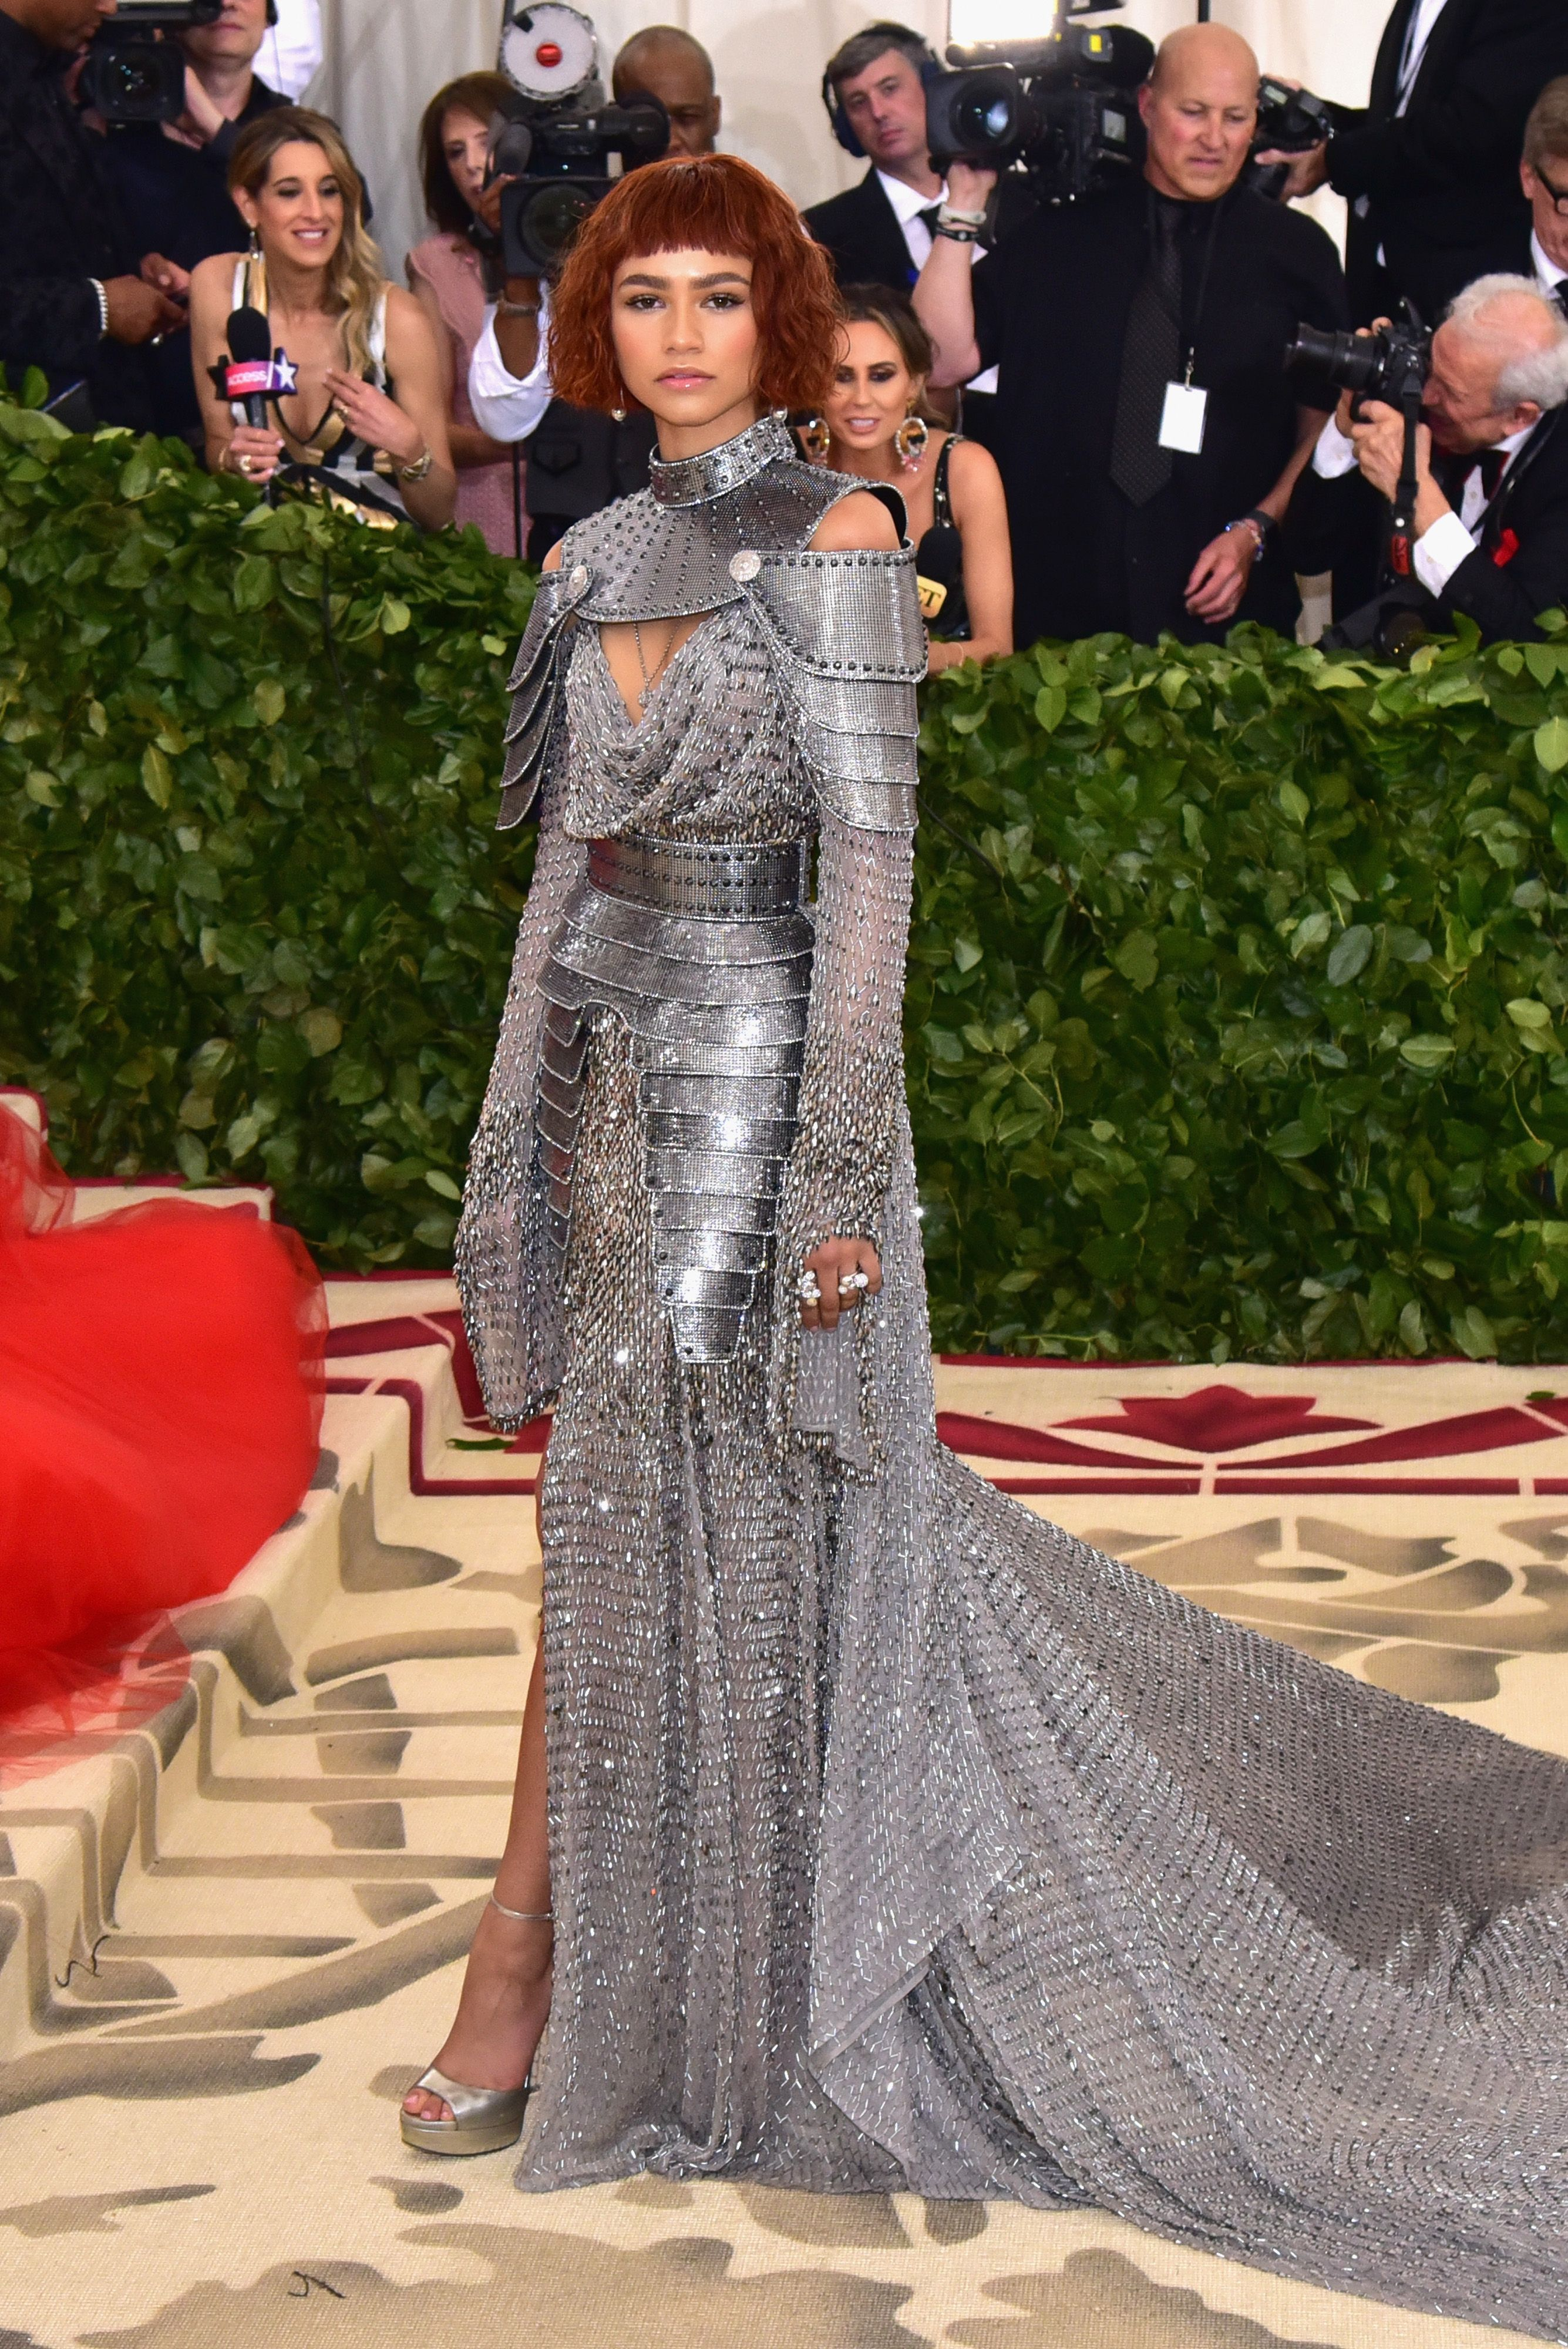 f3f4f862ed8 The Wildest Celebrity Style Moments of 2018 - Craziest Fashion Moments of  2018